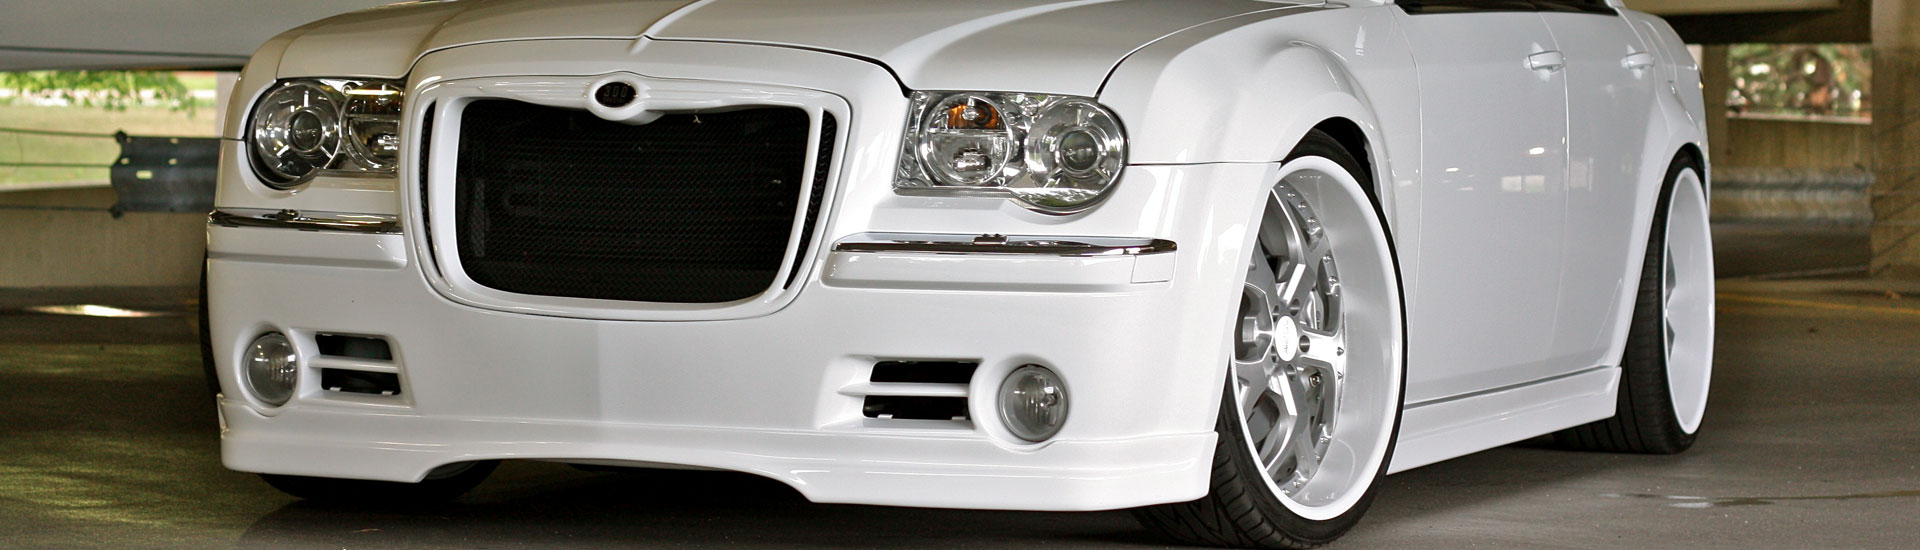 Chrysler Paint Protection Kits